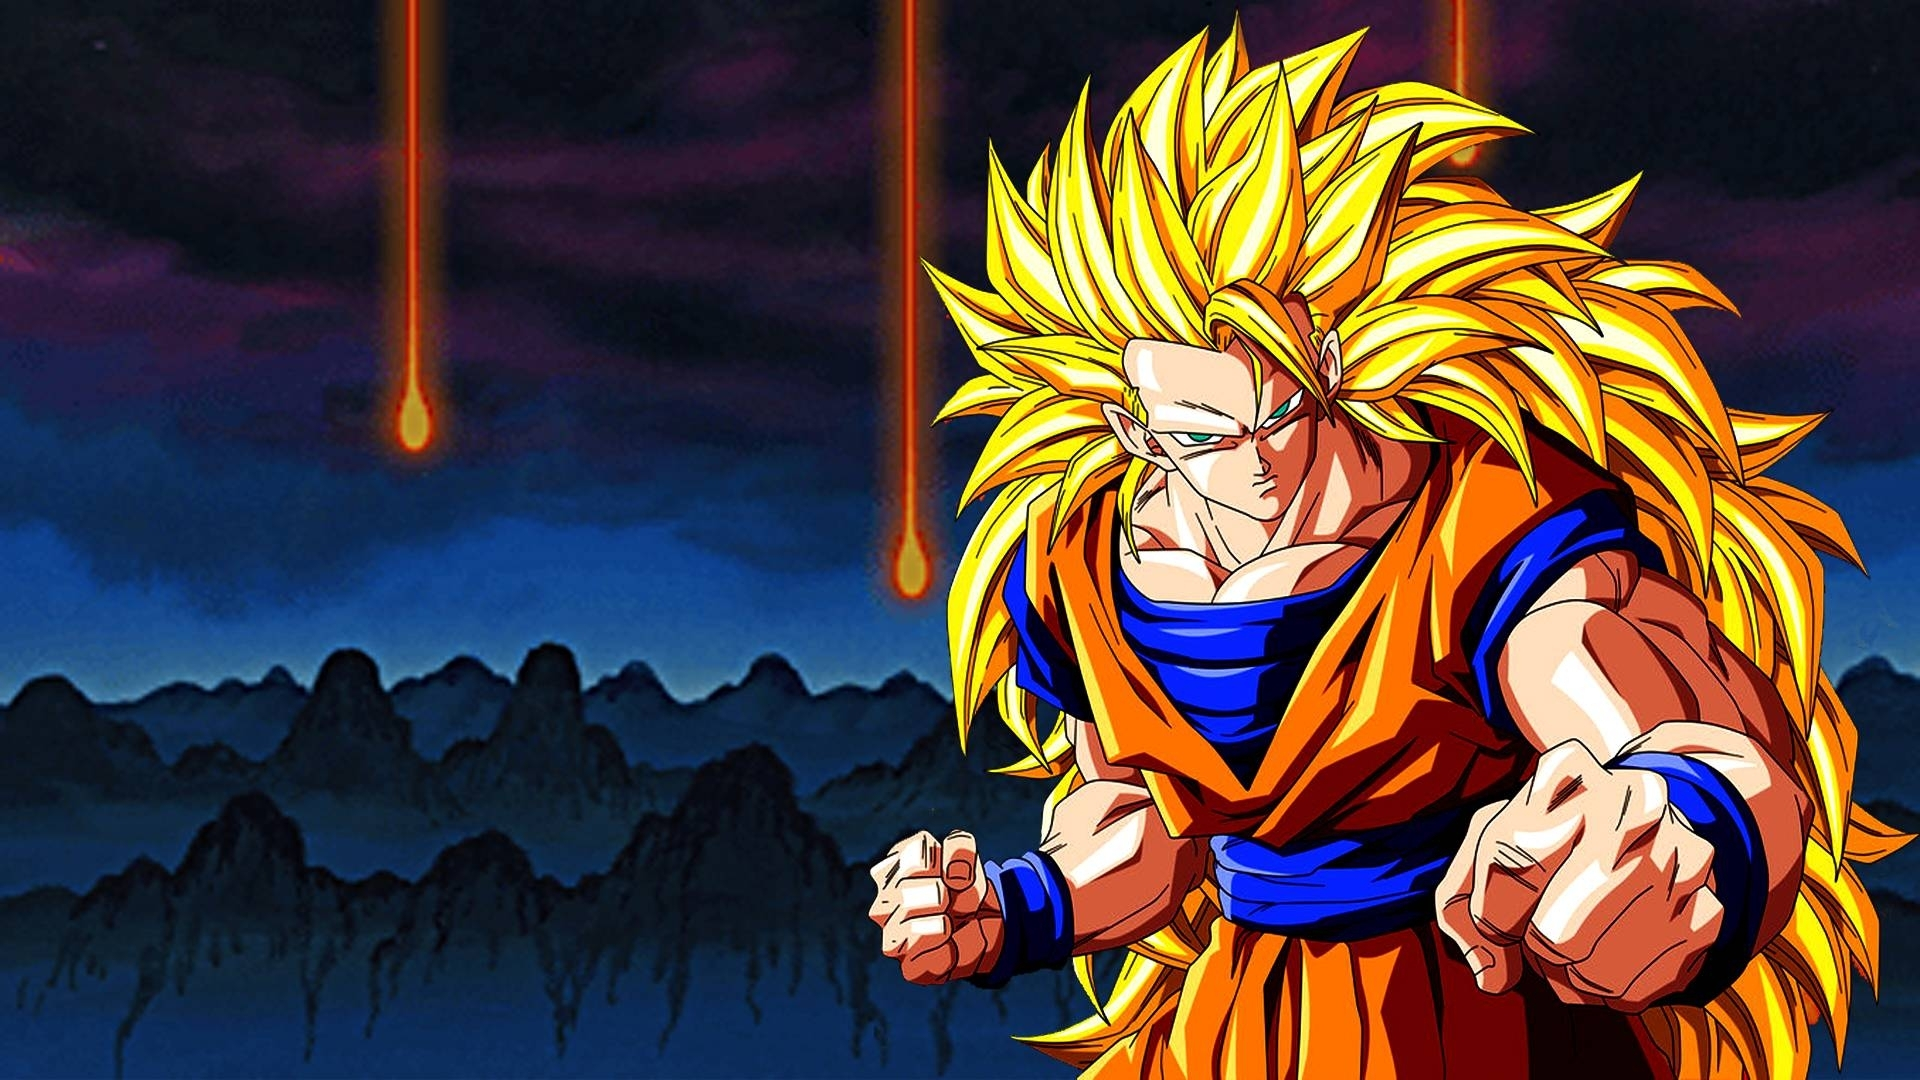 dragon ball z wallpapers hd goku free download | pixelstalk